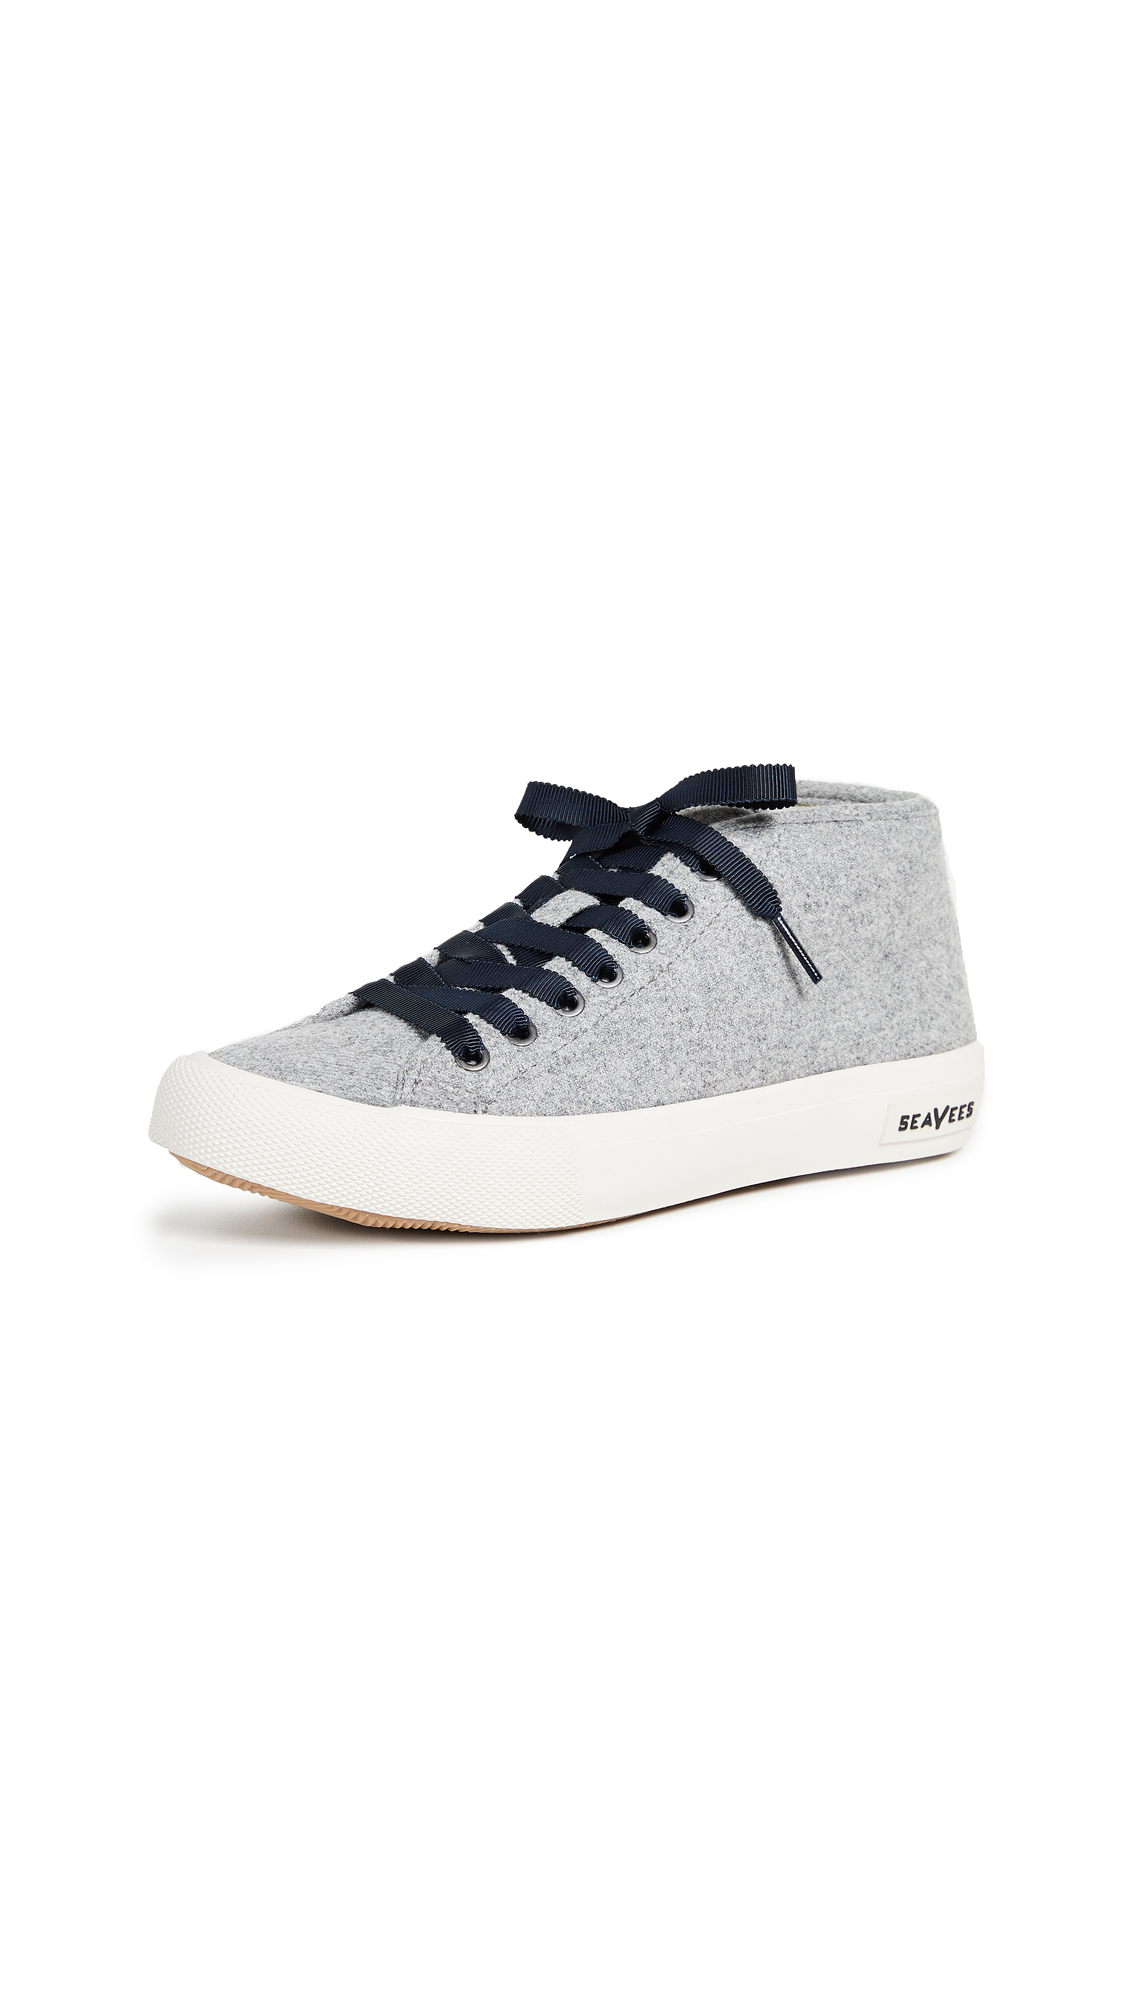 SeaVees California Special Varsity Sneakers - Light Grey